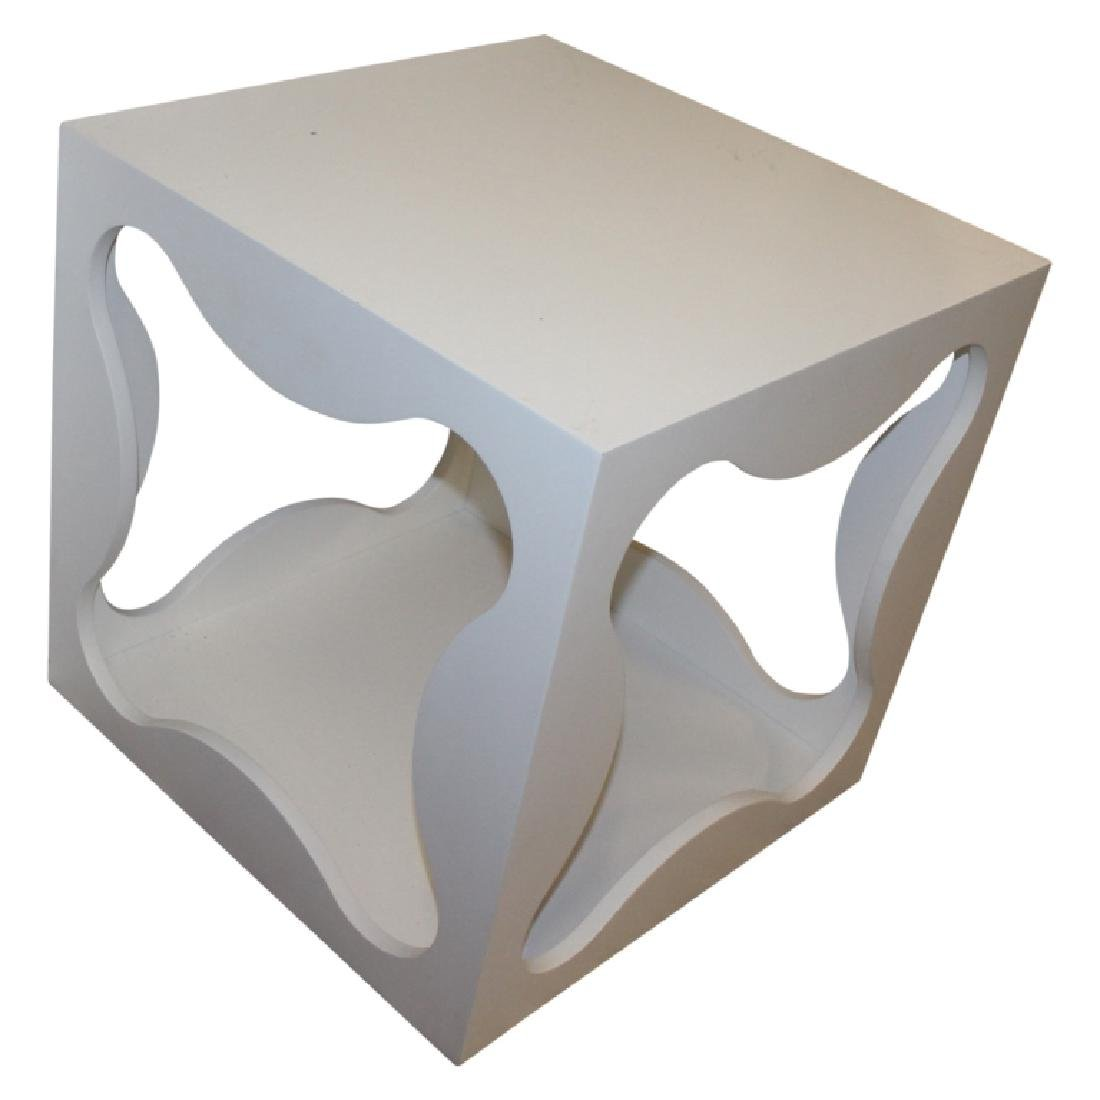 Pair of Modern Square Table Cubes - 2